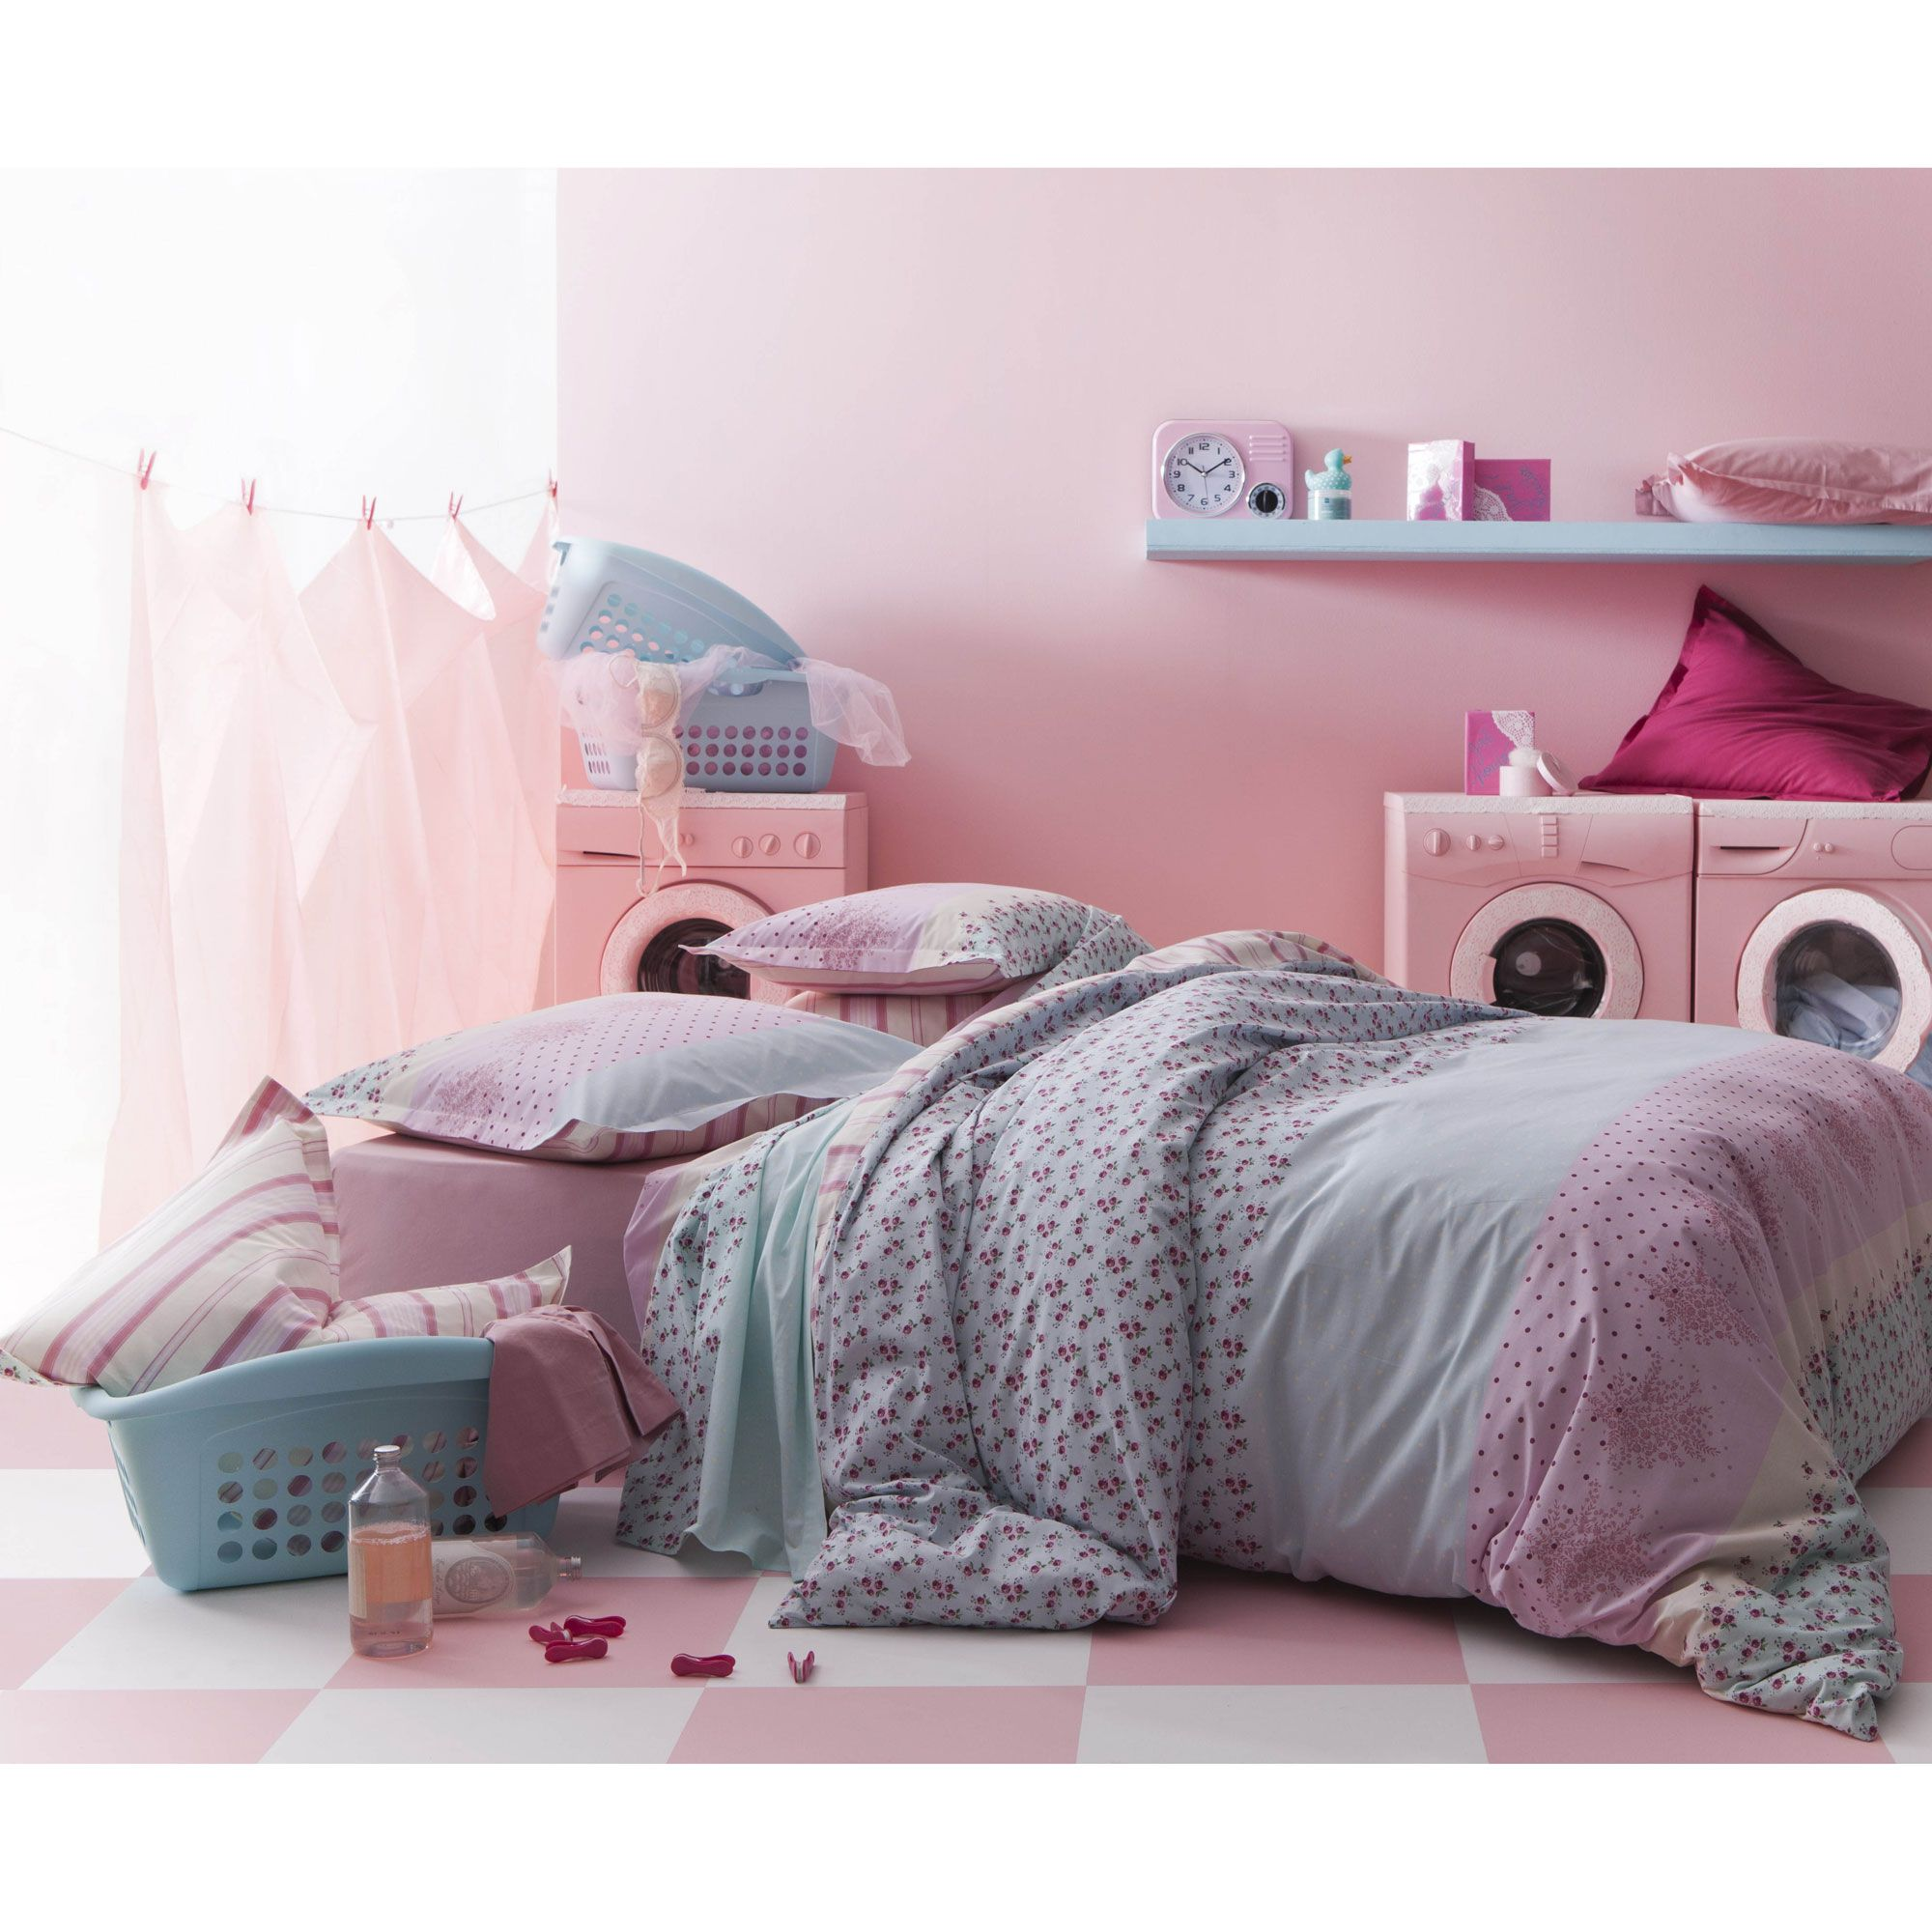 housse de couette 100 coton motifs bleu rose pastels insouciance essix port offert housse. Black Bedroom Furniture Sets. Home Design Ideas